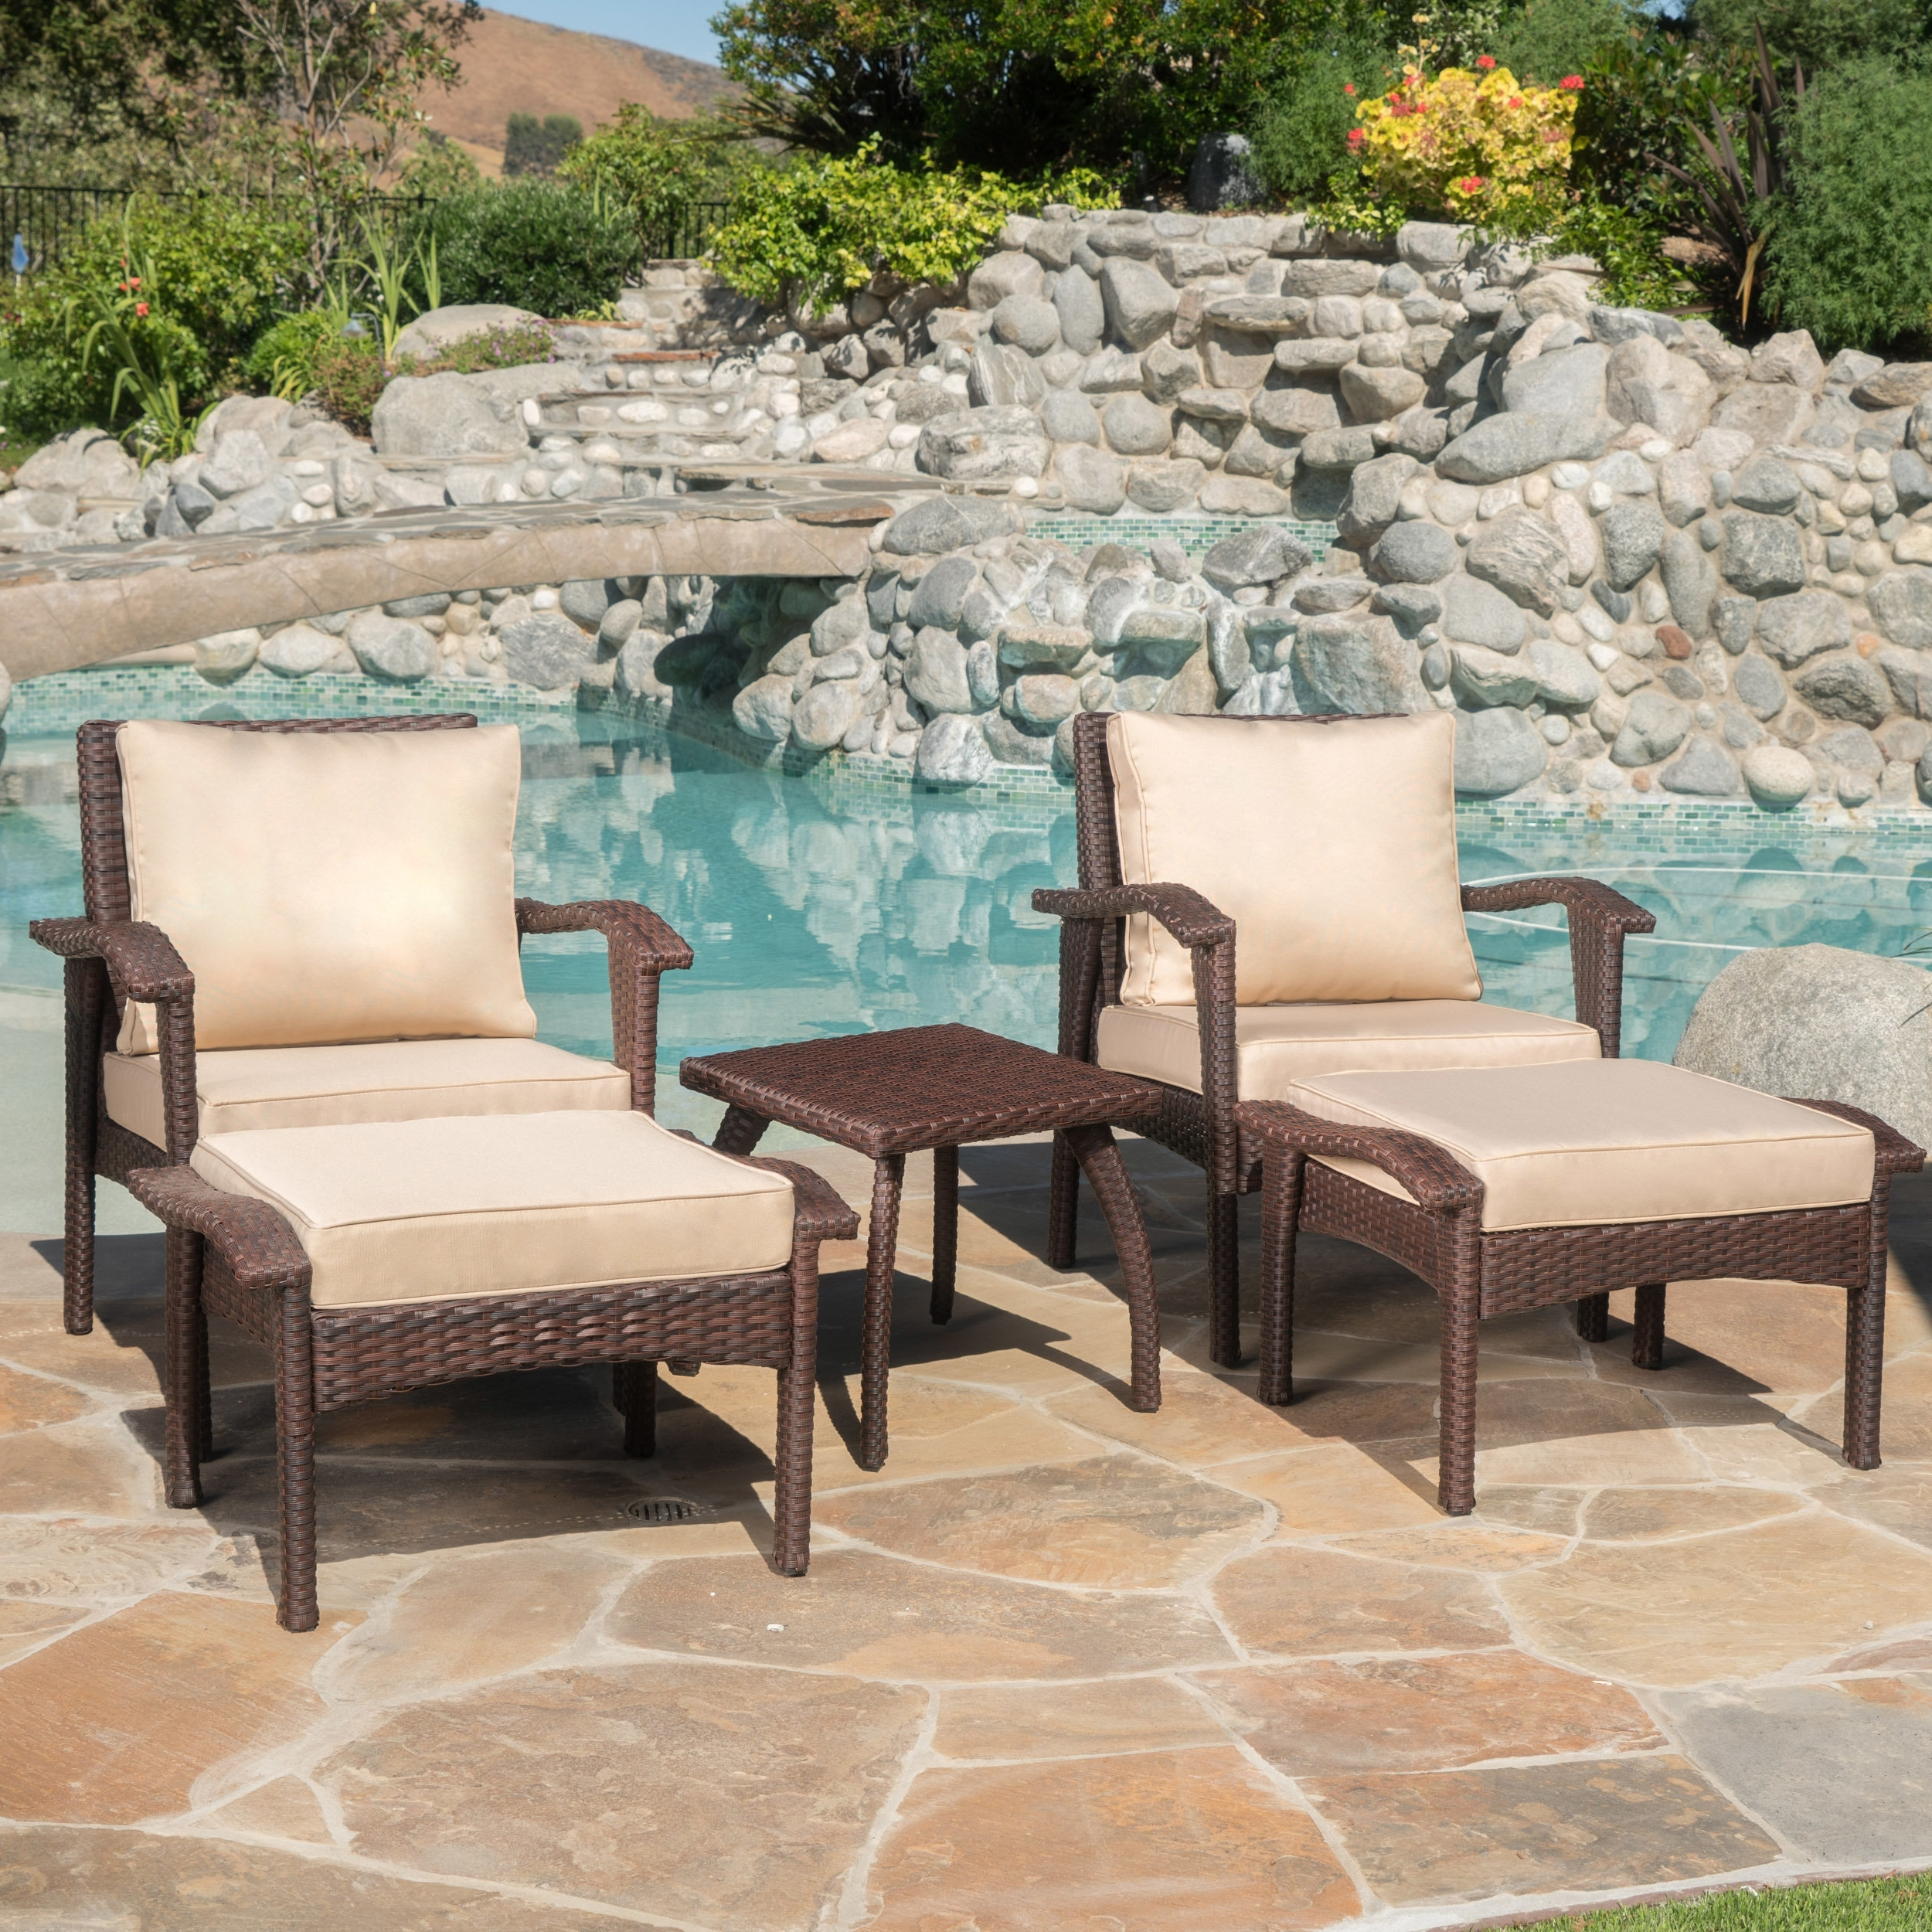 Most Current Patio Conversation Sets With Cushions Regarding Alcott Hill Springboro 5 Piece Conversation Set With Cushions (View 7 of 15)